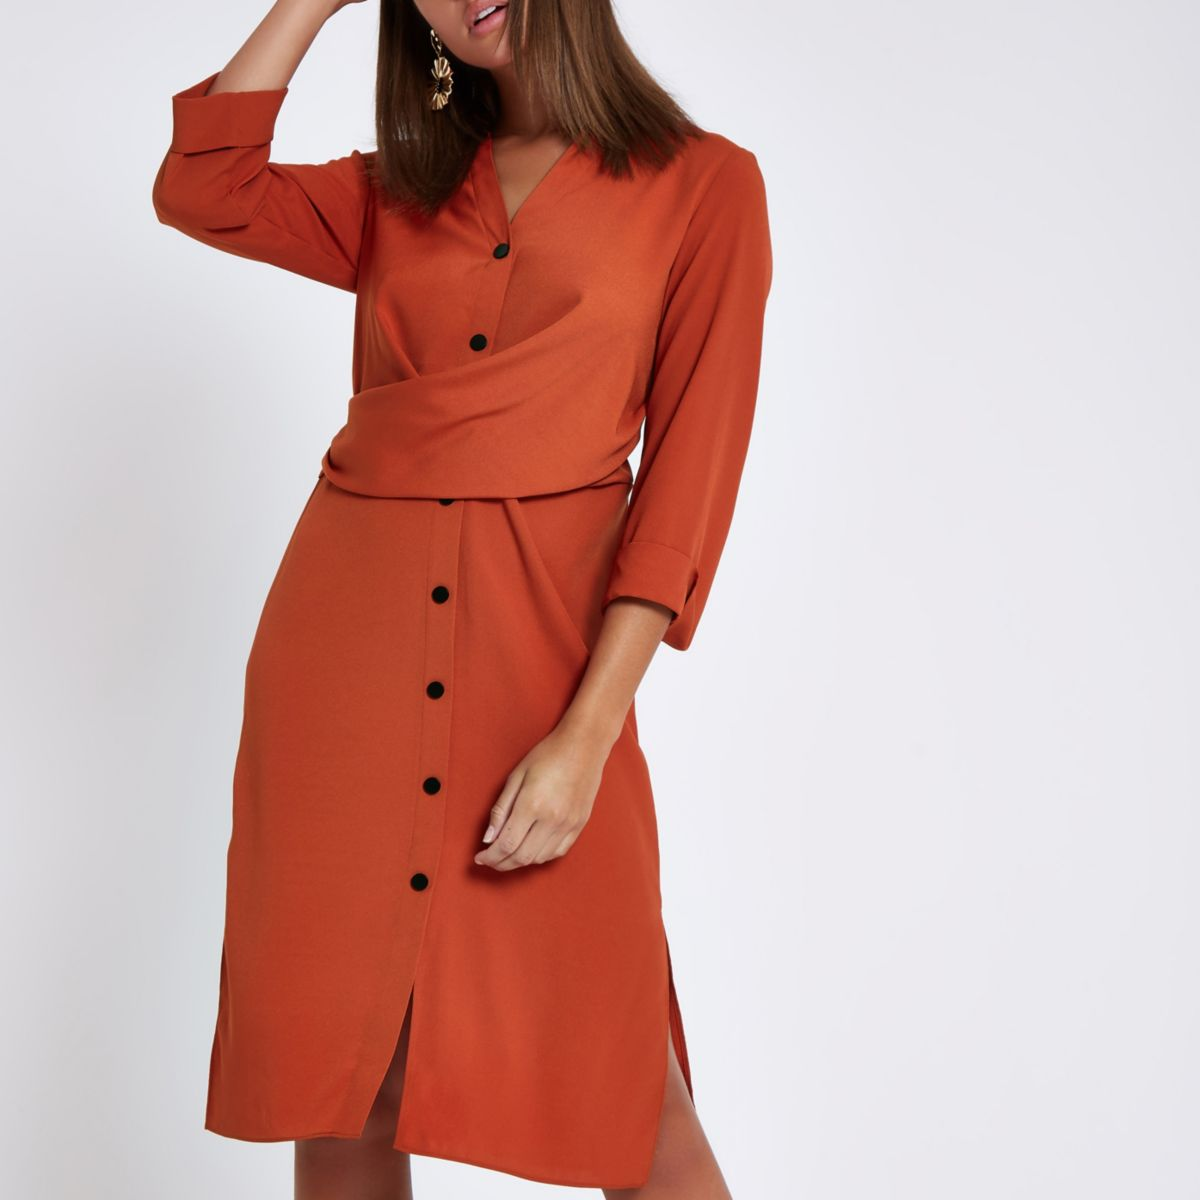 ultimate-style-guide-outfit for in-and out-of-office-River-Island-orange-twist-midi-shirt-dress